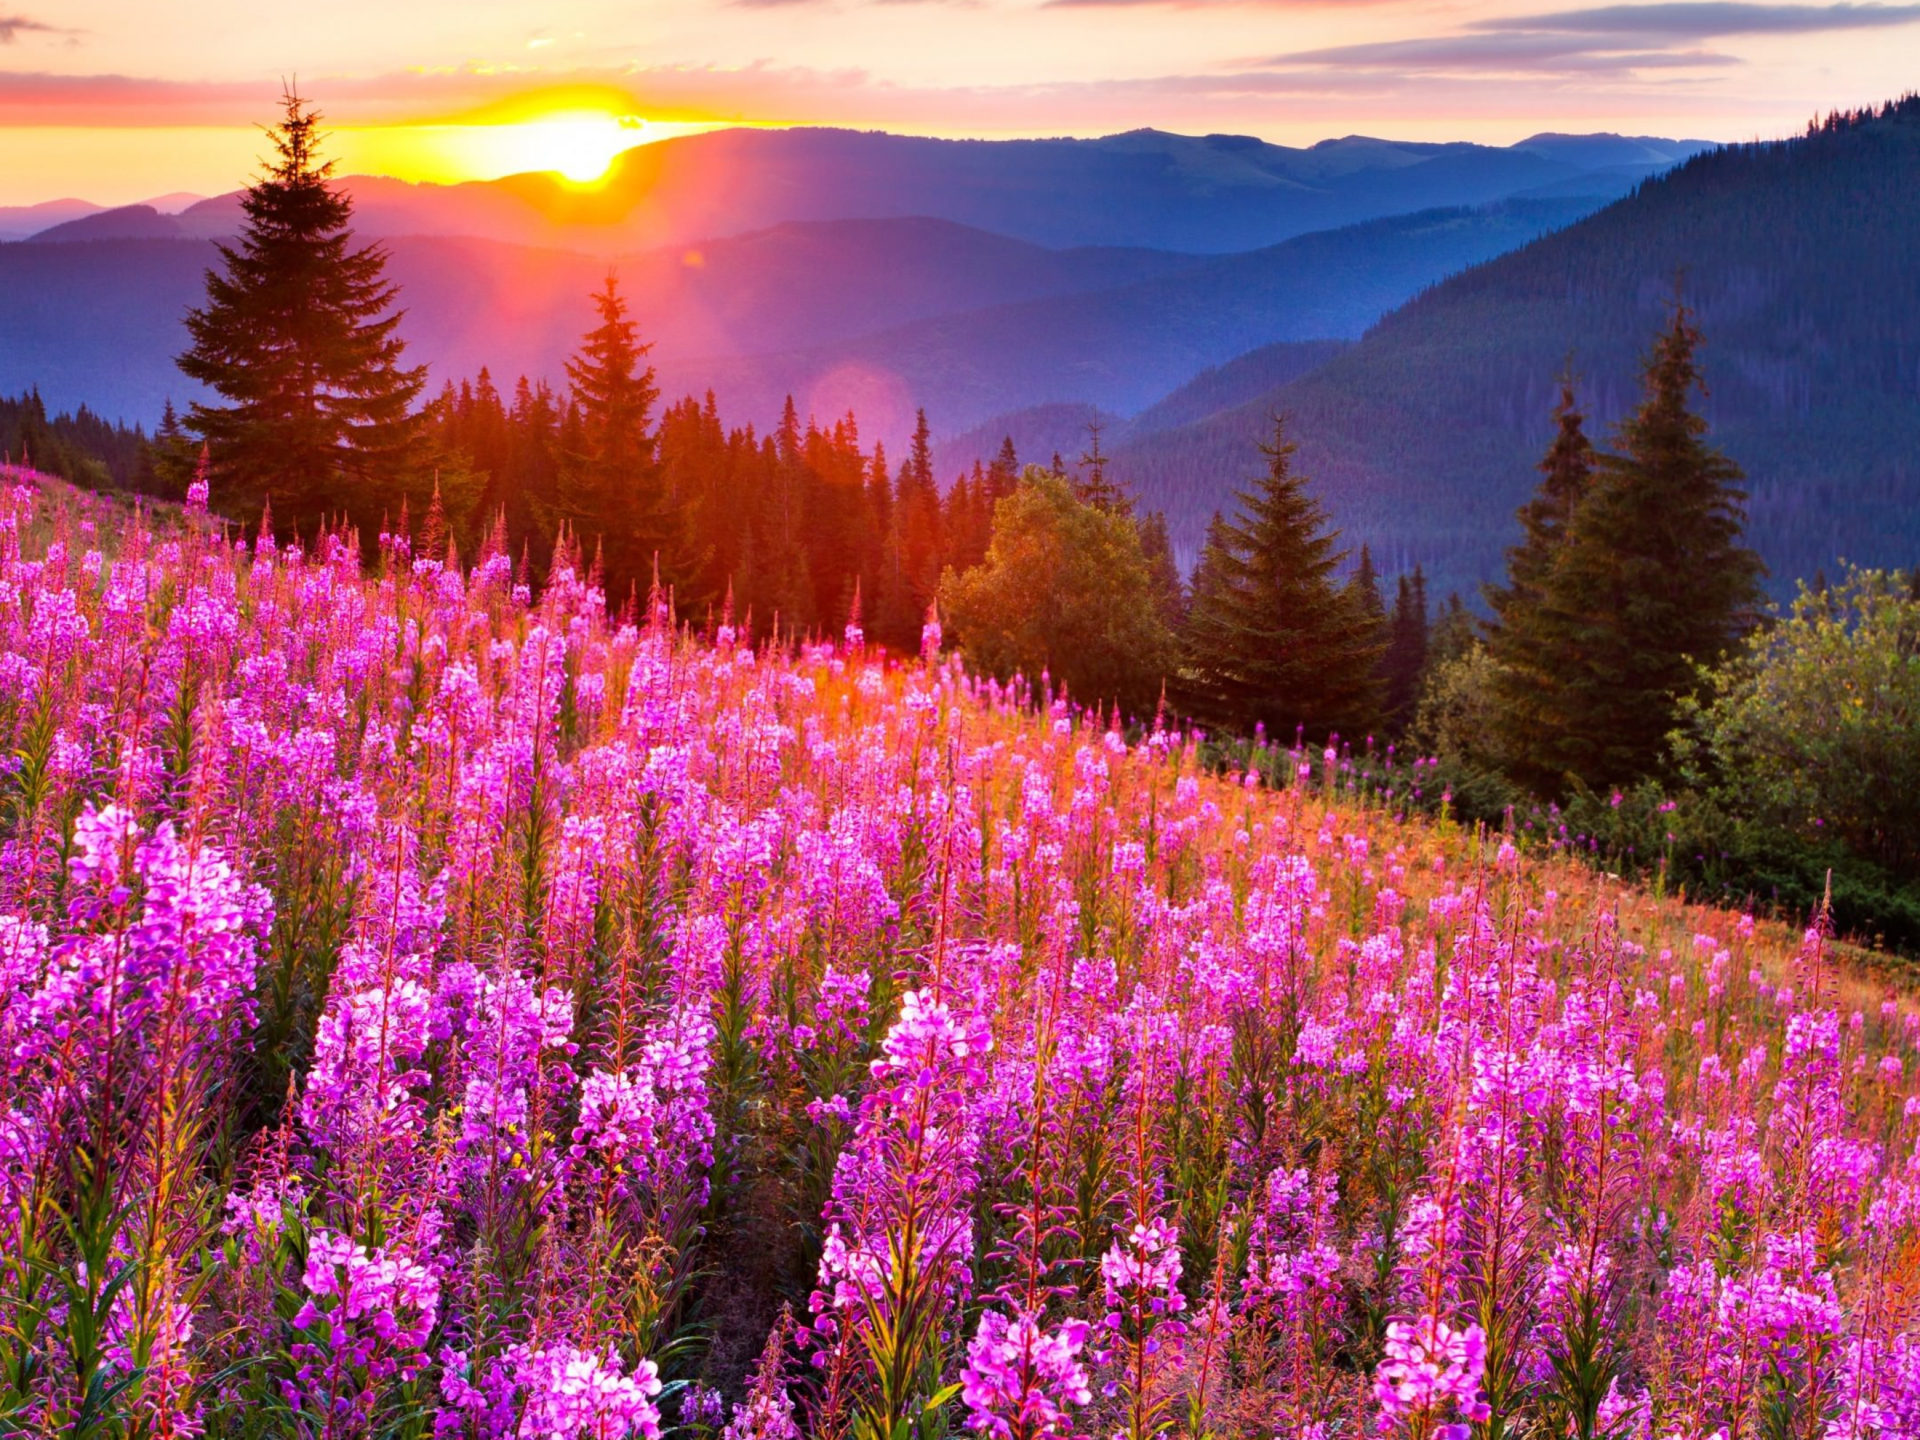 Download Dota 2 Wallpaper Hd Sunsets Mountain Mow Lupine Pink Flowers Summer Landscape